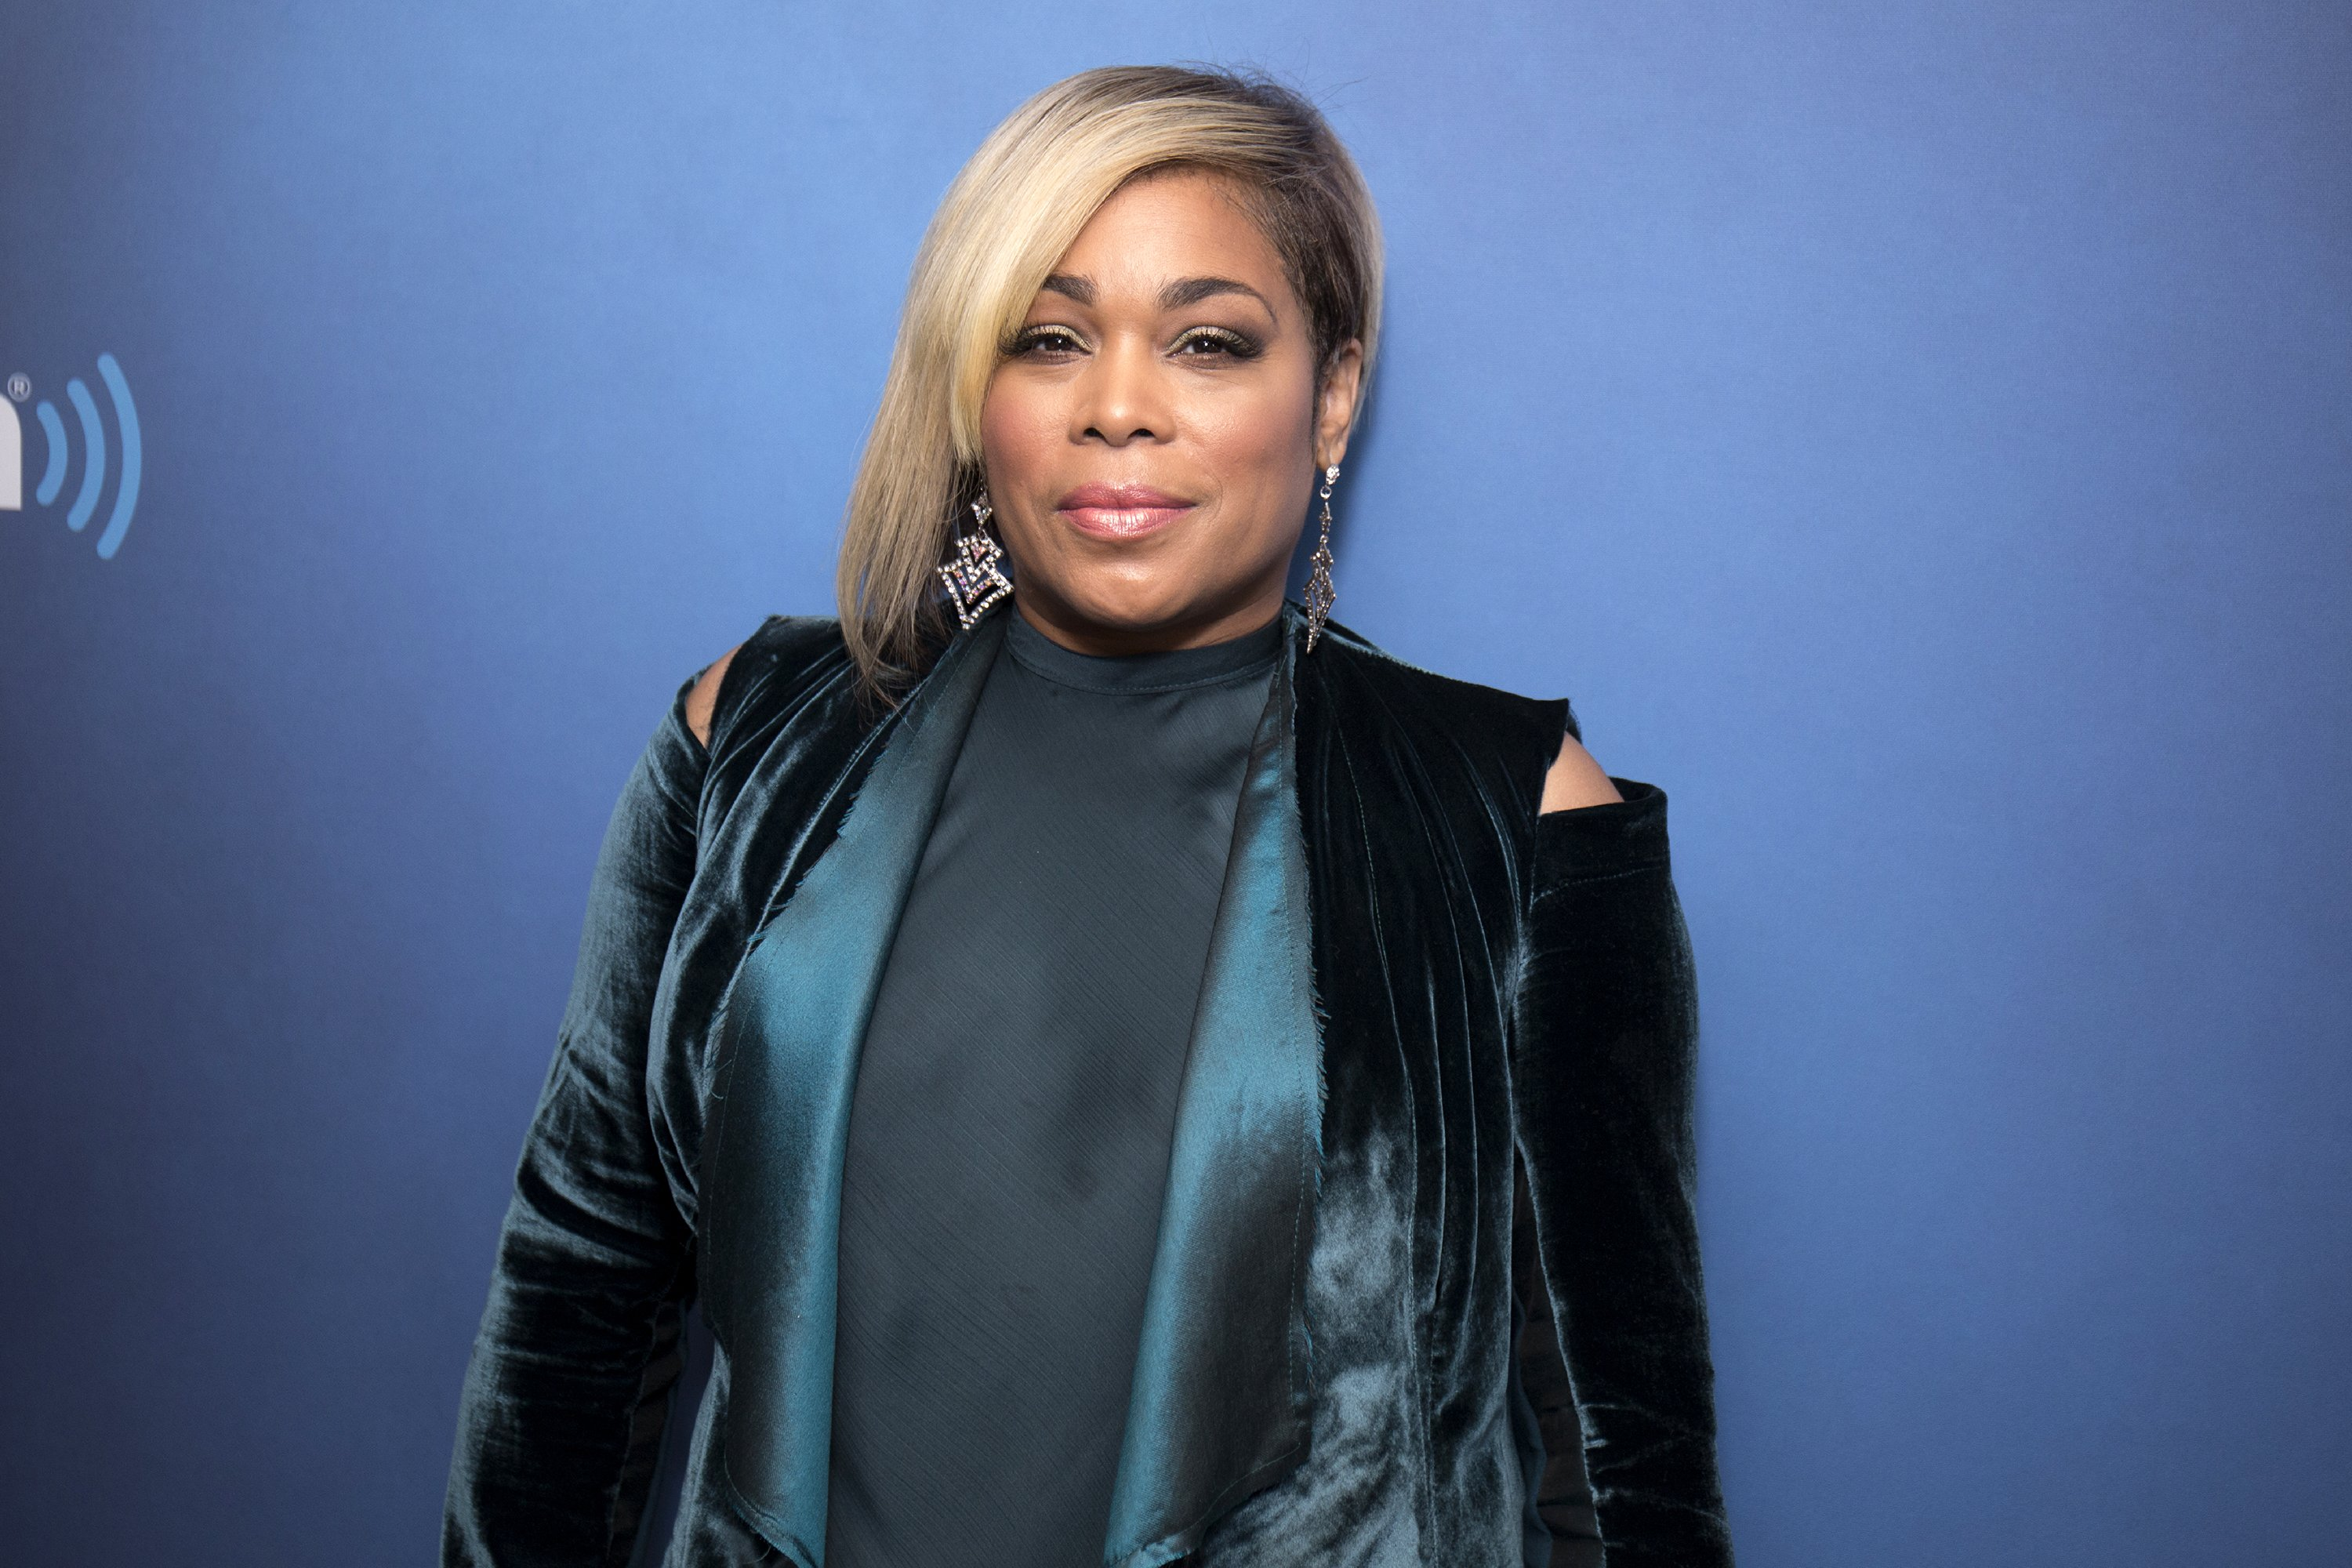 Tionne 'T-Boz' Watkins visits SiriusXM Studios on September 12, 2017, in New York City | Photo: Santiago Felipe/Getty Images